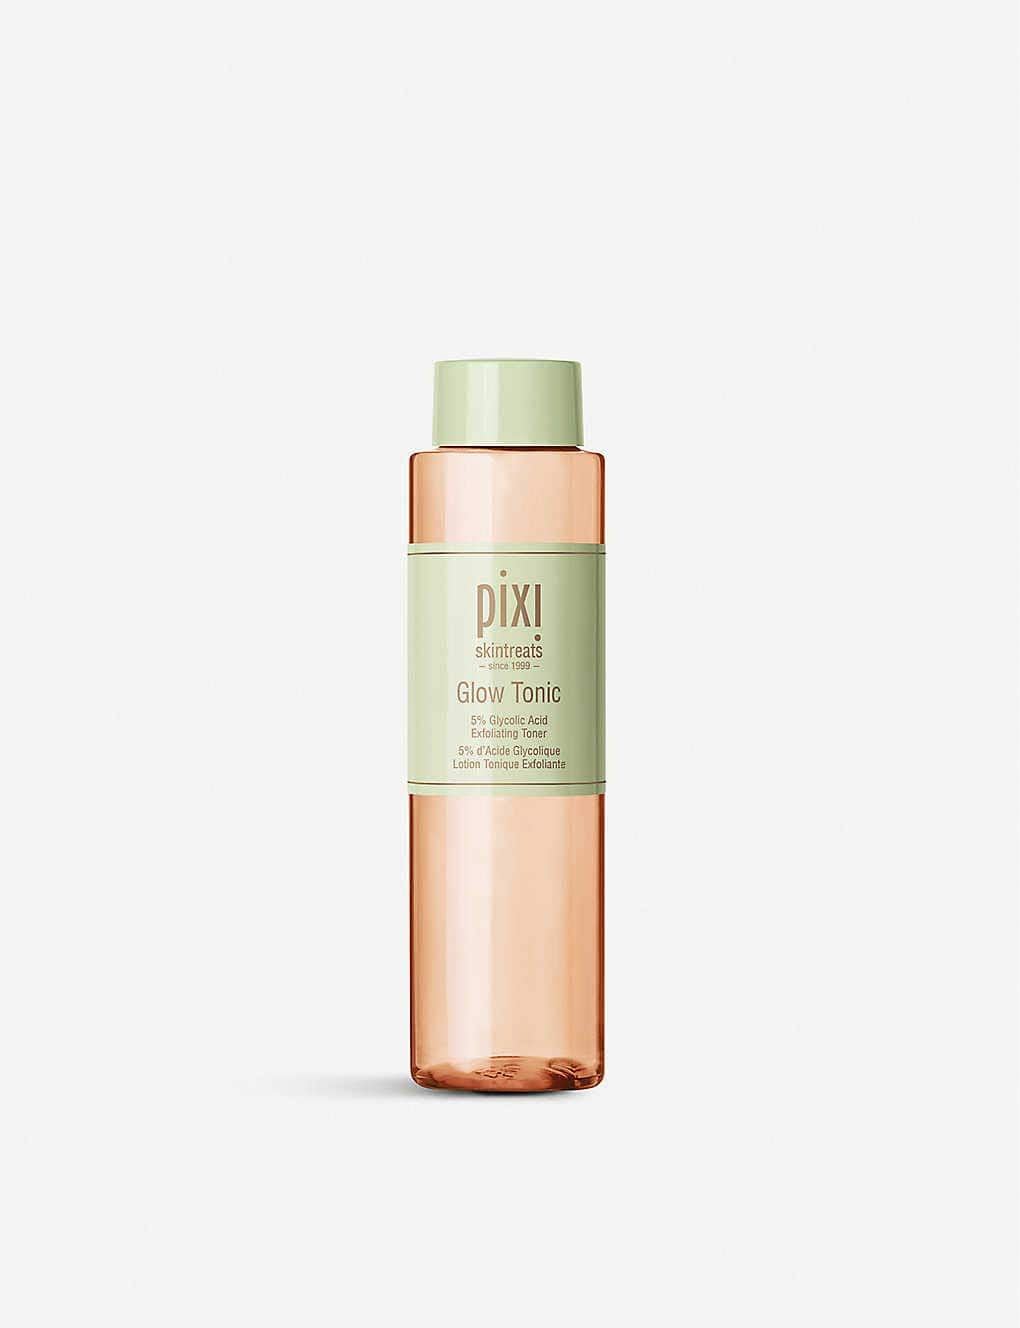 pixi glow tonic is one of the best toners for oily skin and large pores